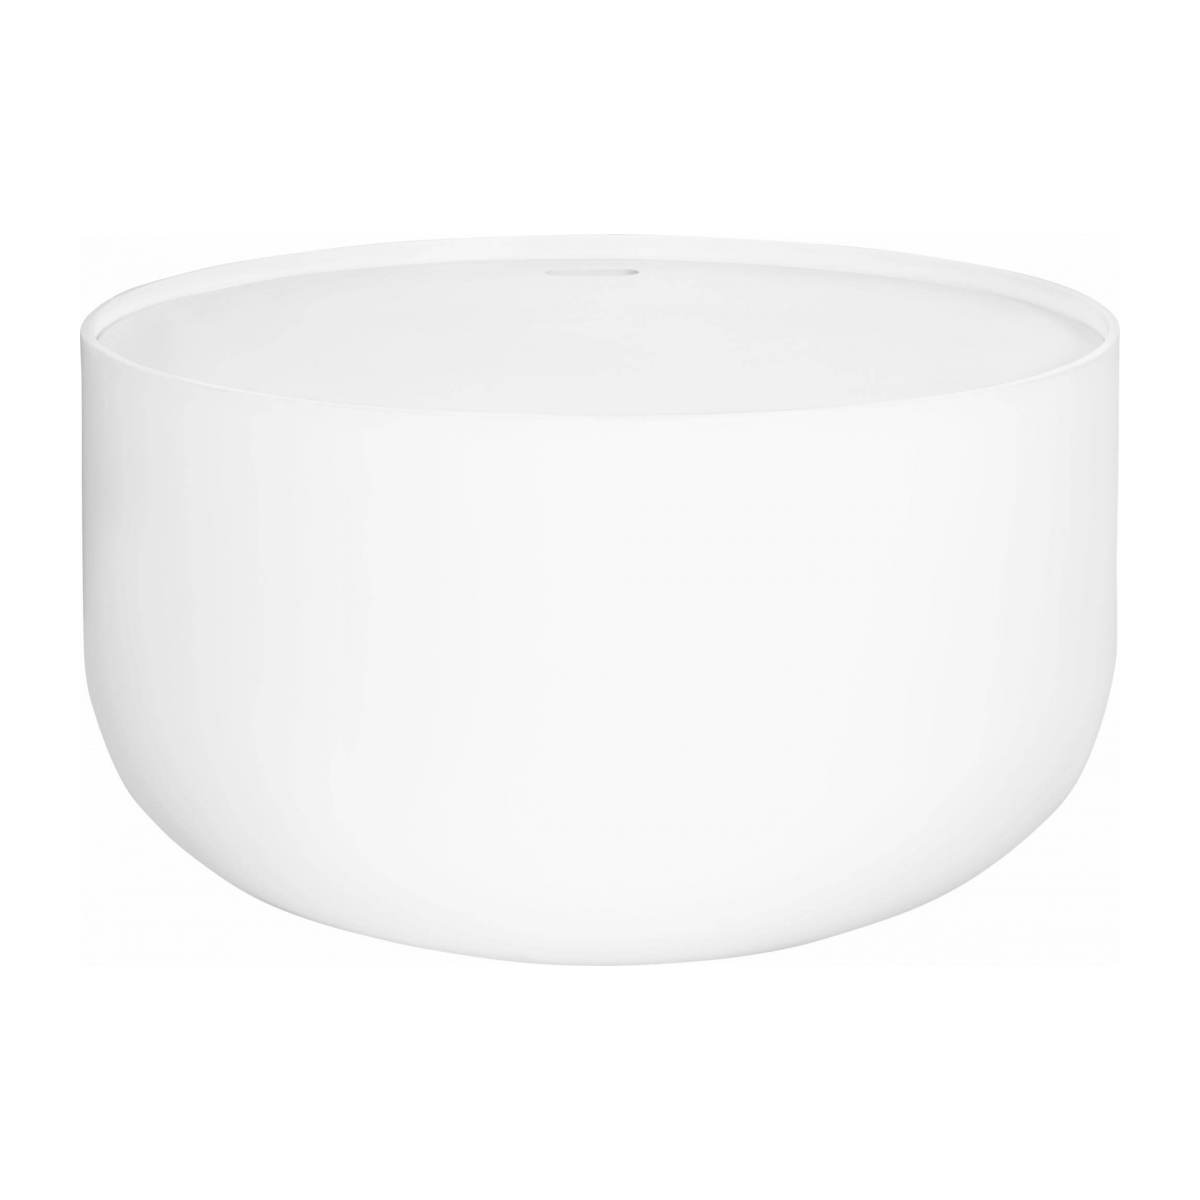 Table d'appoint 60cm blanche n°1